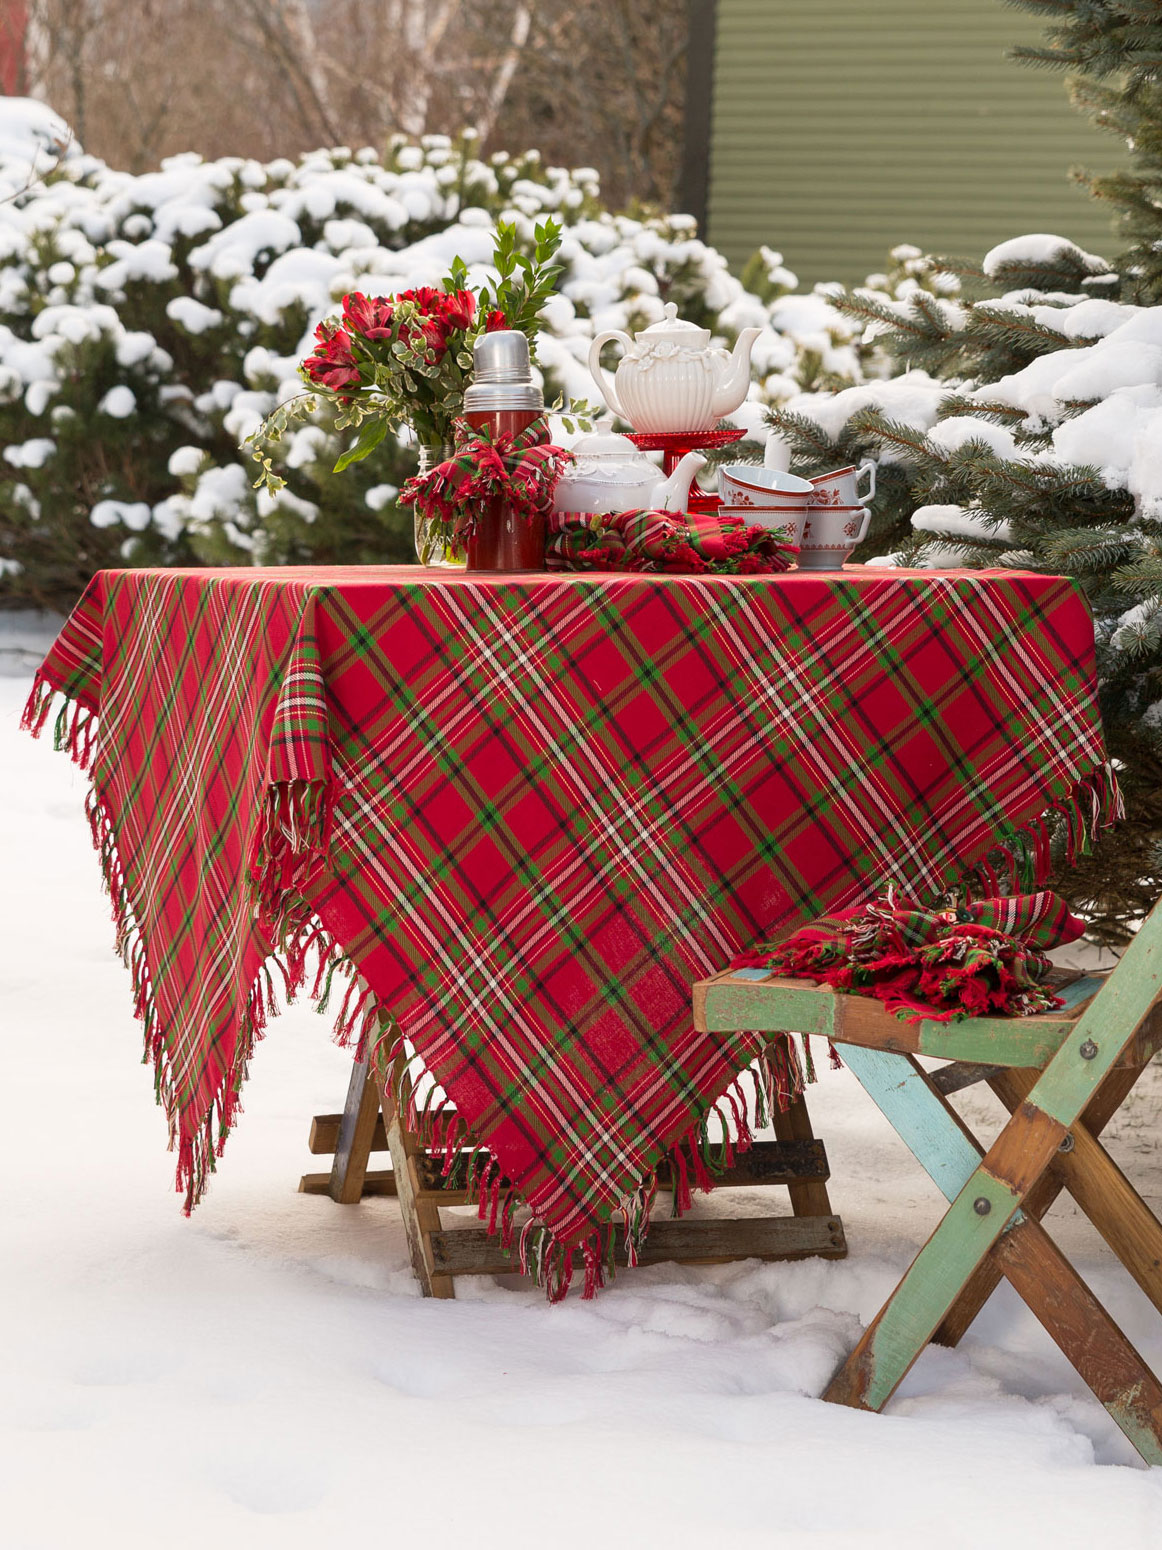 Gentil Christmas Plaid Tablecloth